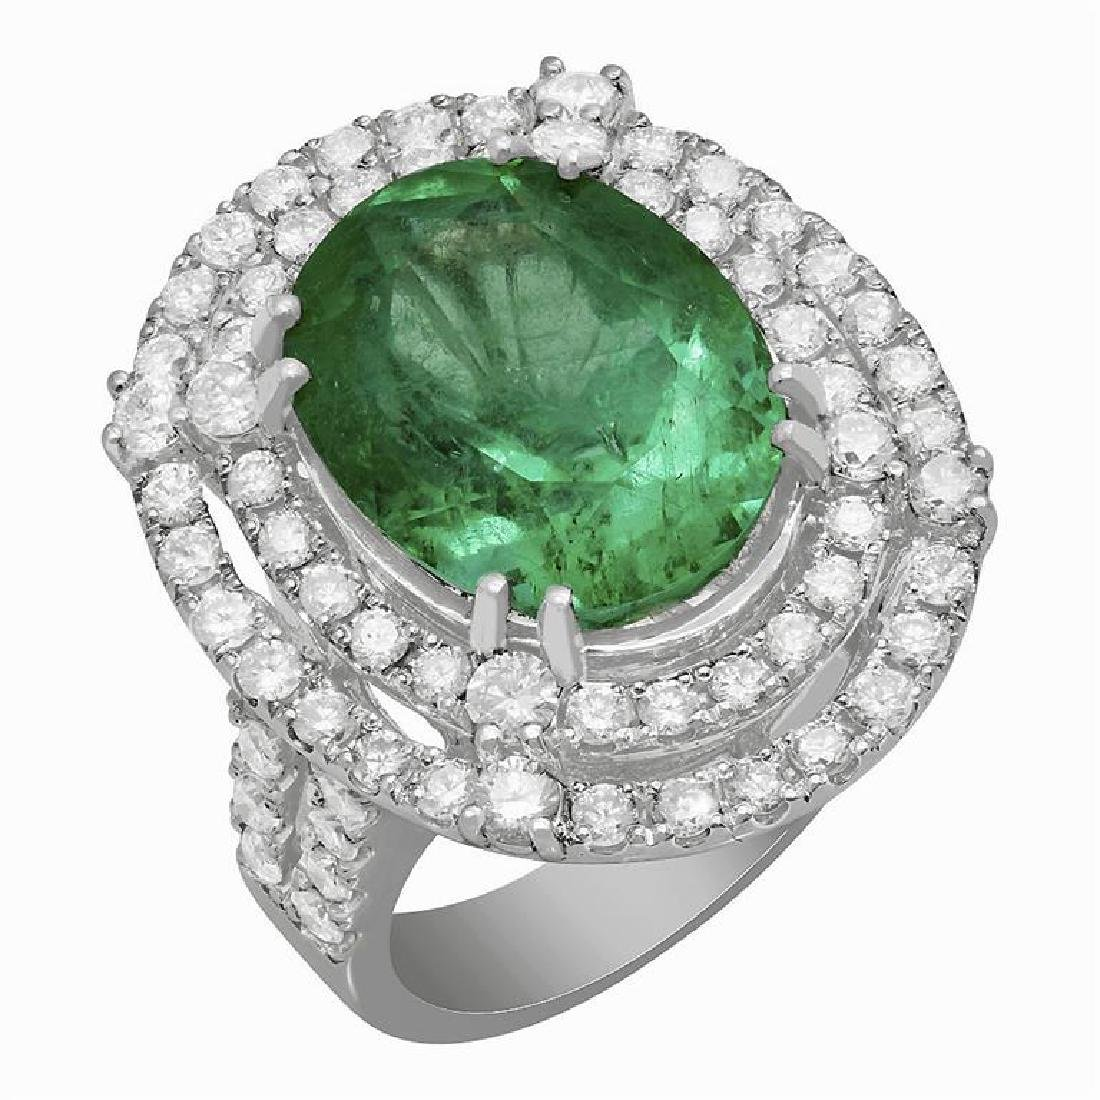 14k White Gold 9.01ct Emerald 2.40ct Diamond Ring